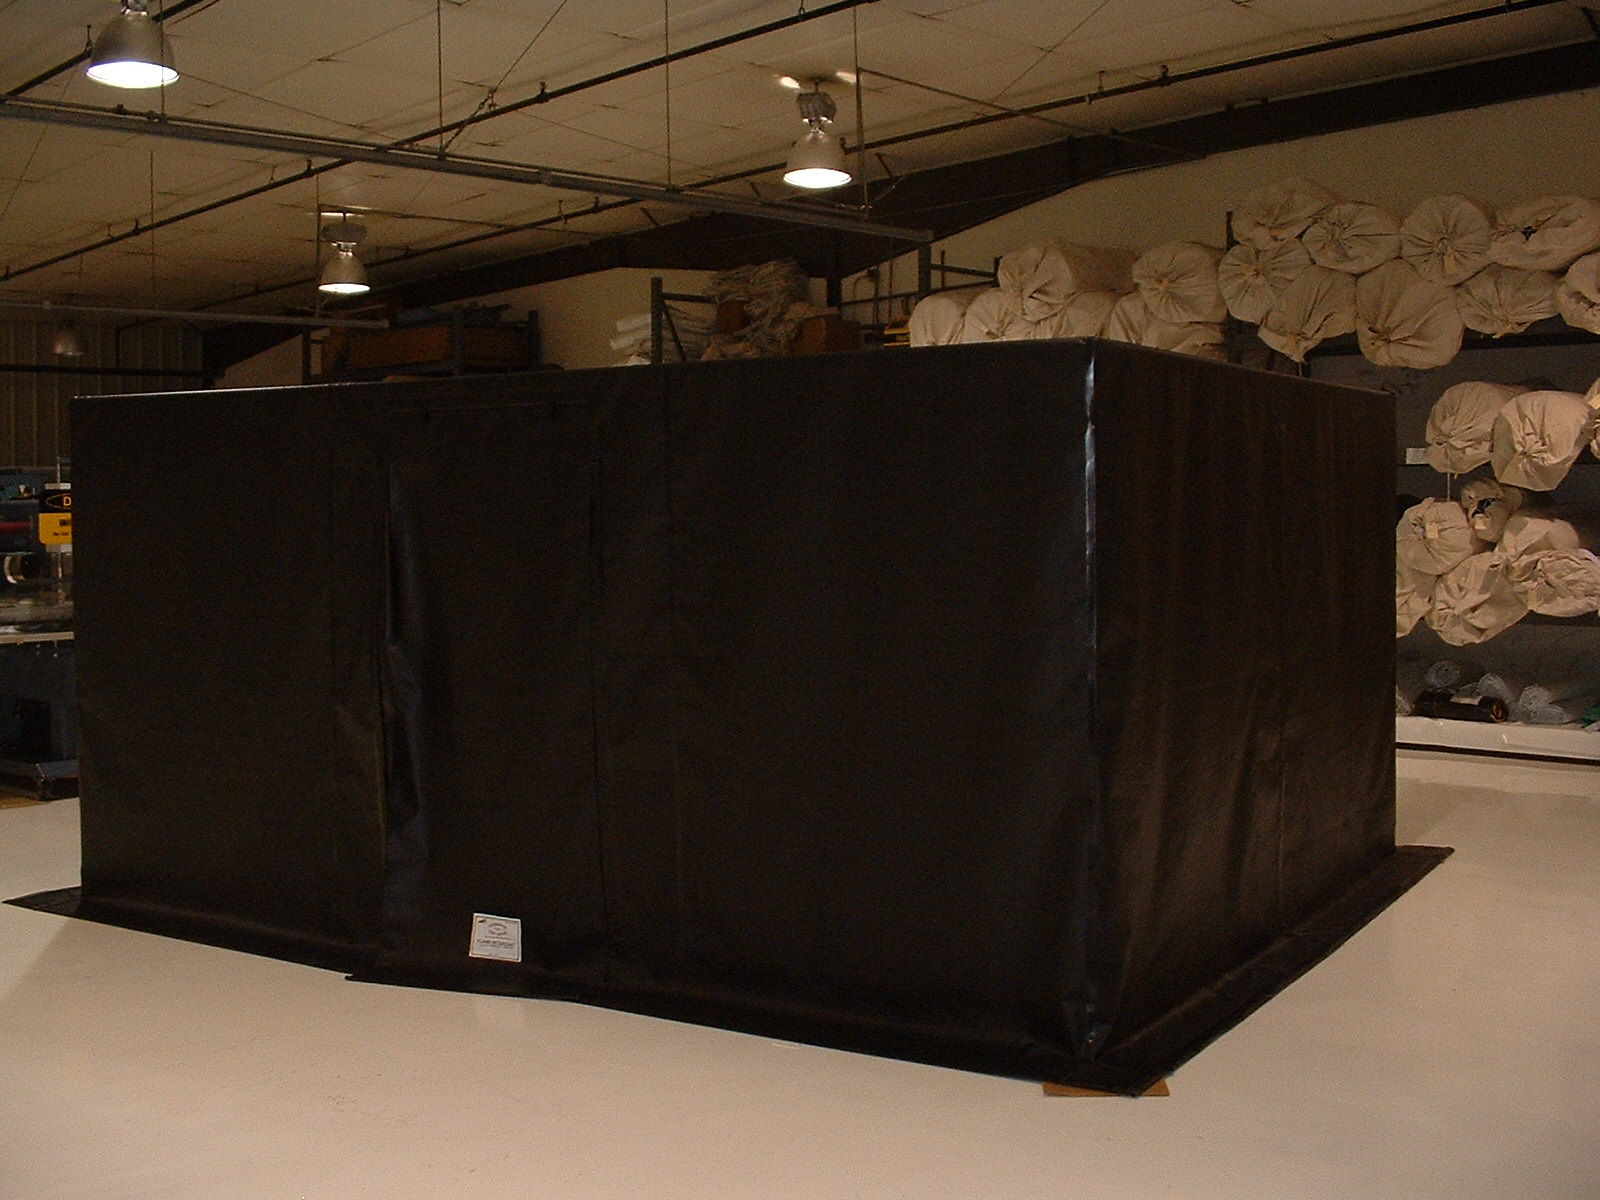 Manufacturing Inspection Tent/Custom Dark Room to Inspect Turbine Blades